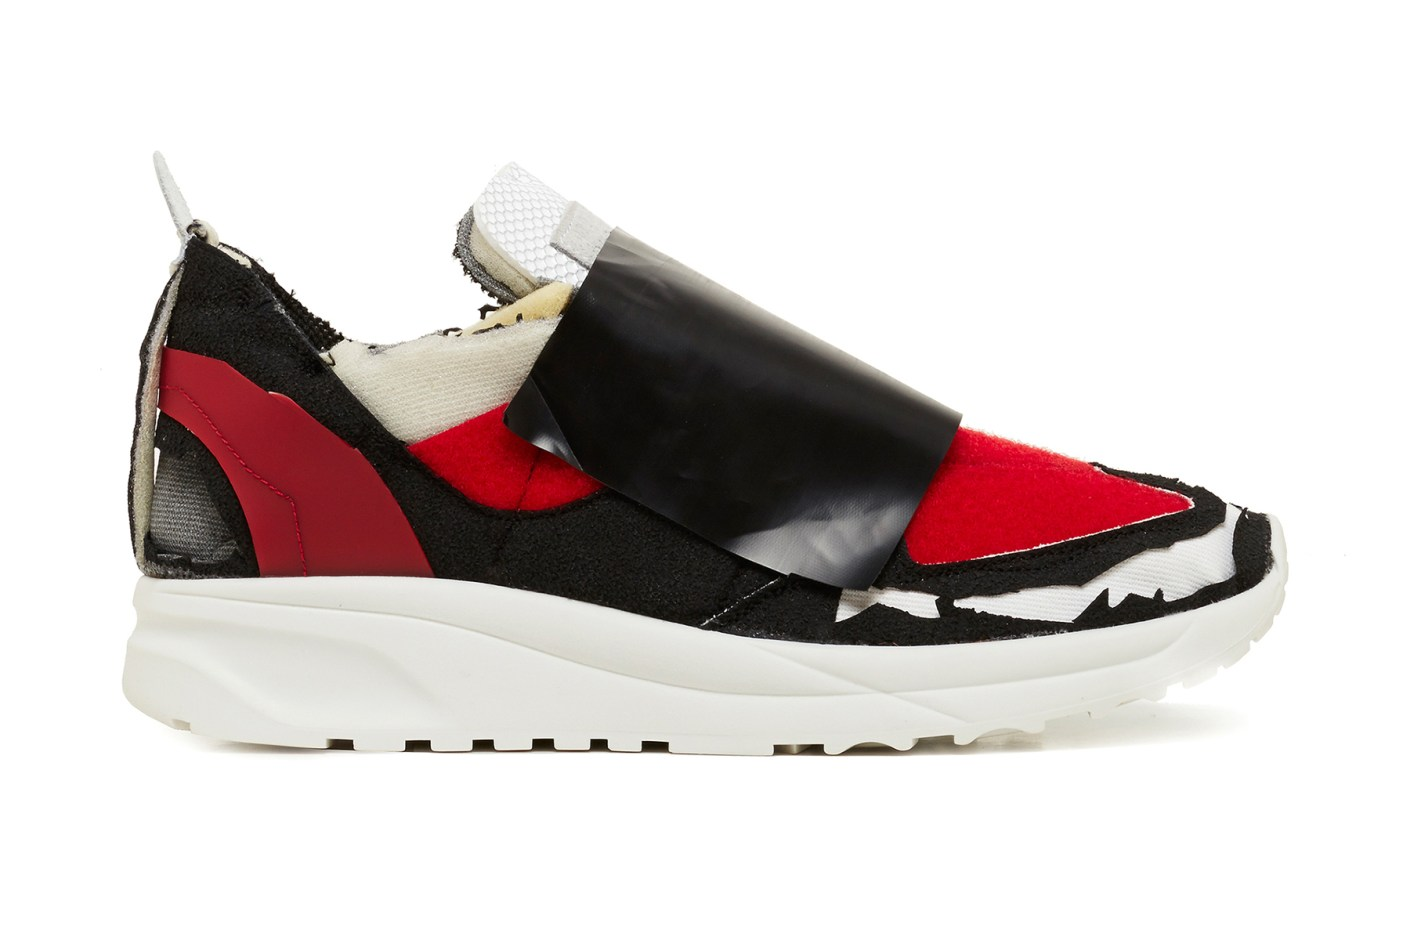 Image of Maison Martin Margiela 2015 Spring/Summer Sneaker Preview